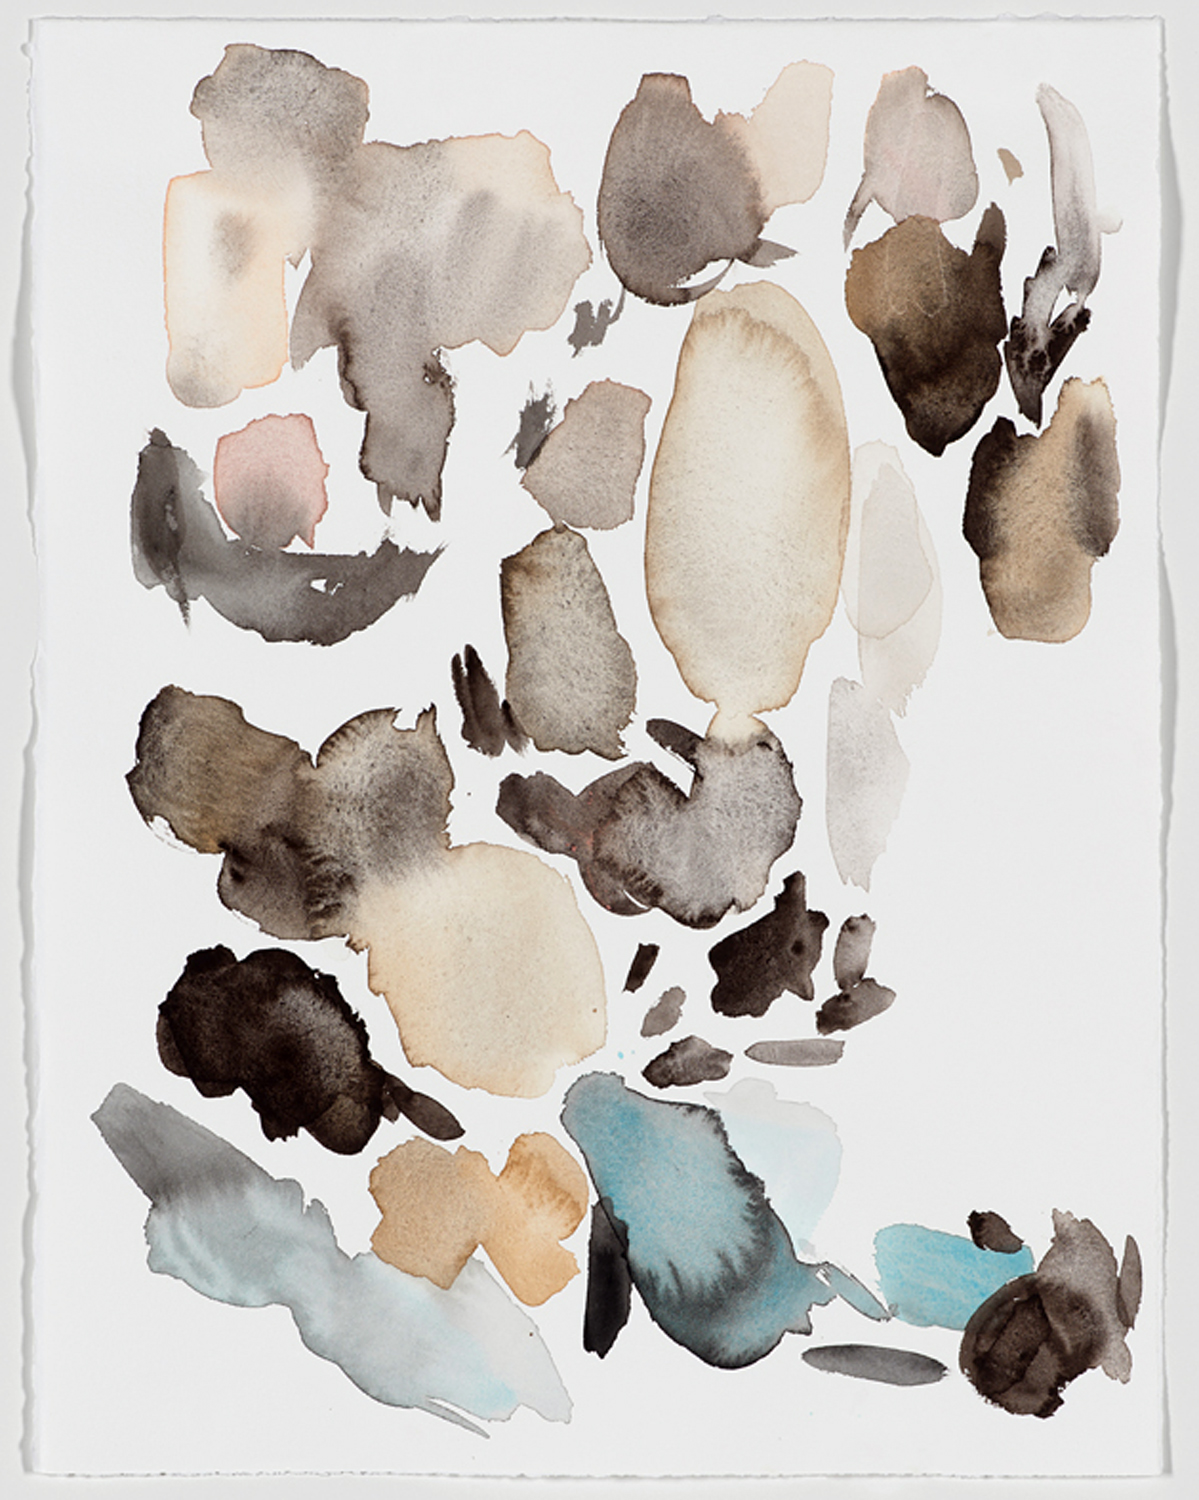 Kelly Inouye, Krystle Carrington, 2015.  Watercolor on Paper. 13 x 16 inches.  Framed in white.